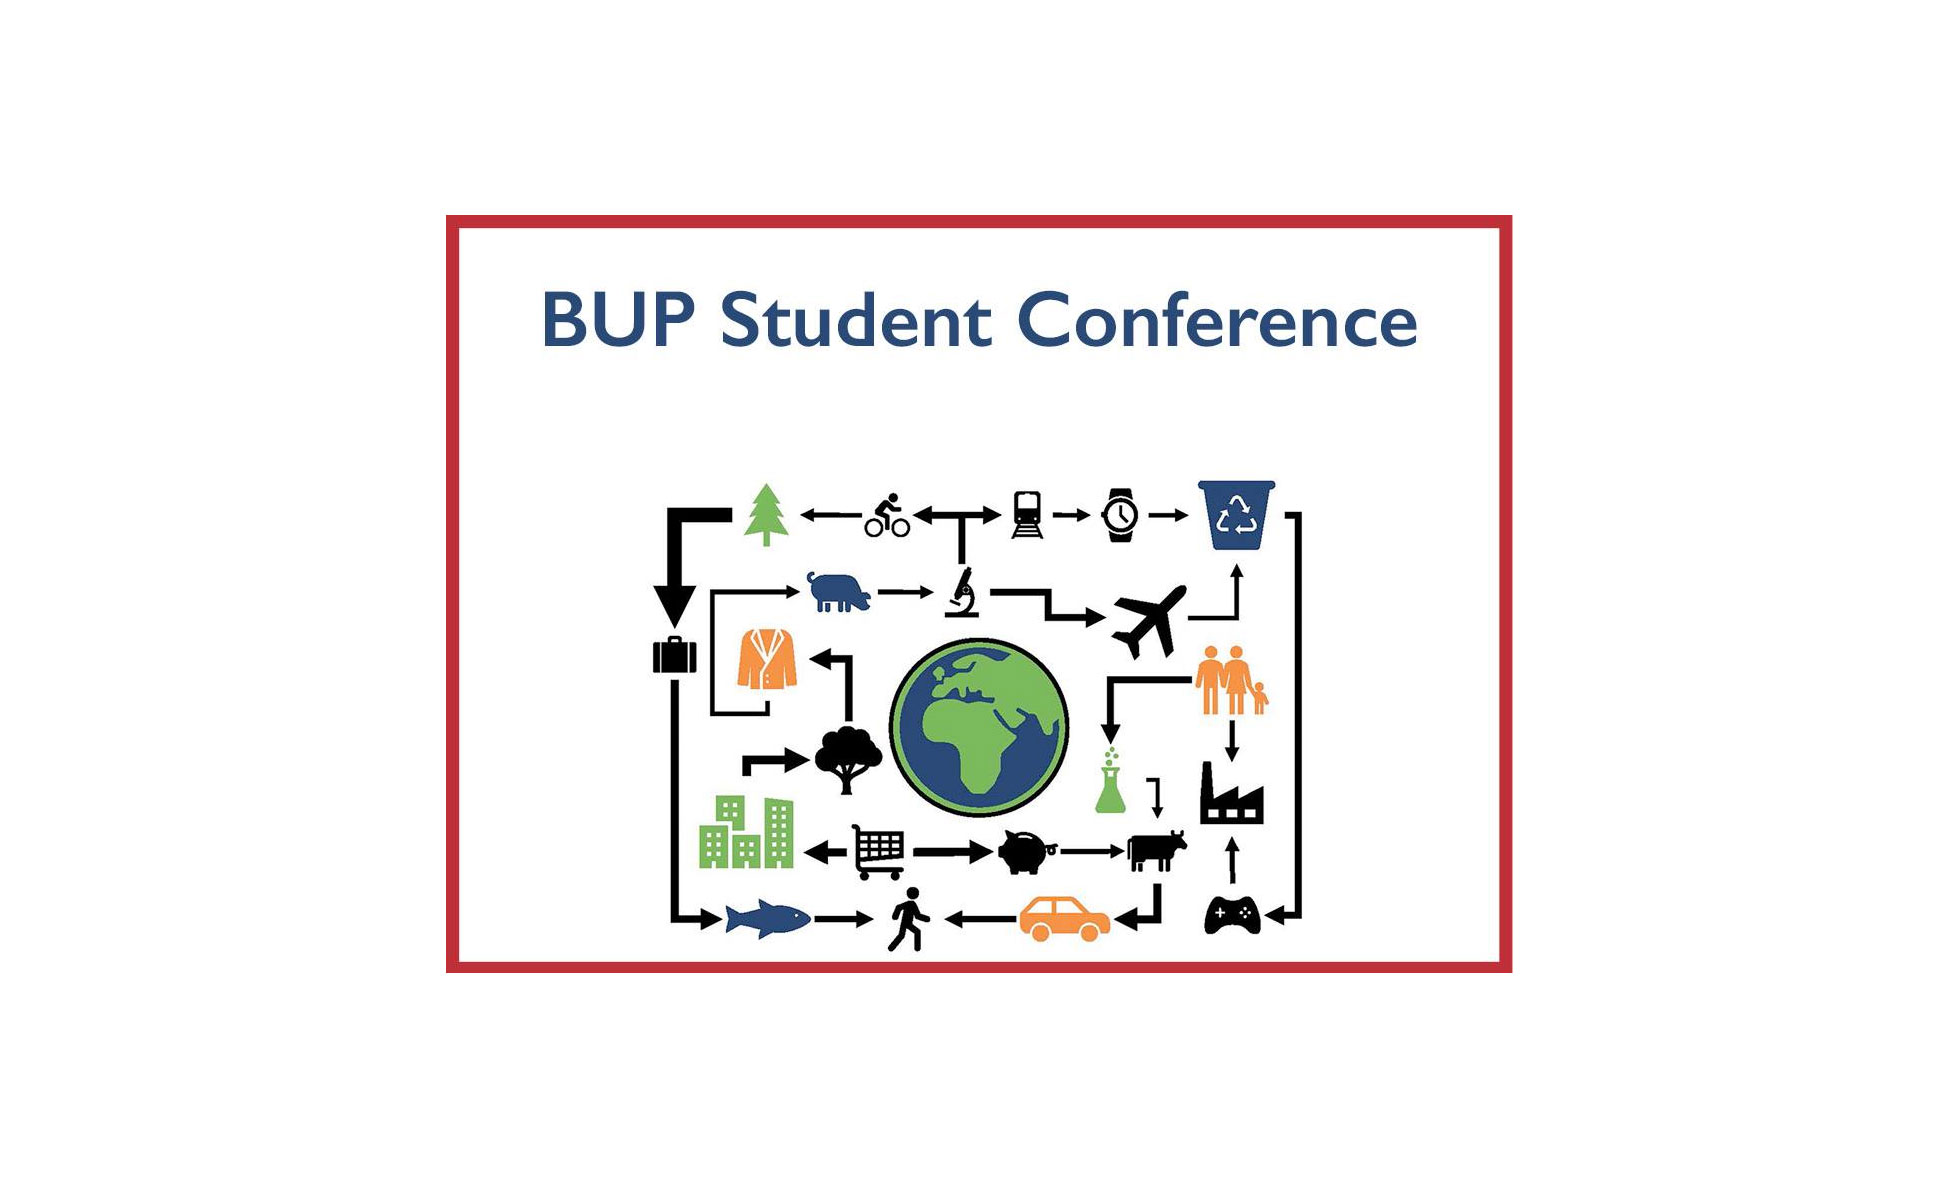 BUP Student Conference 2019